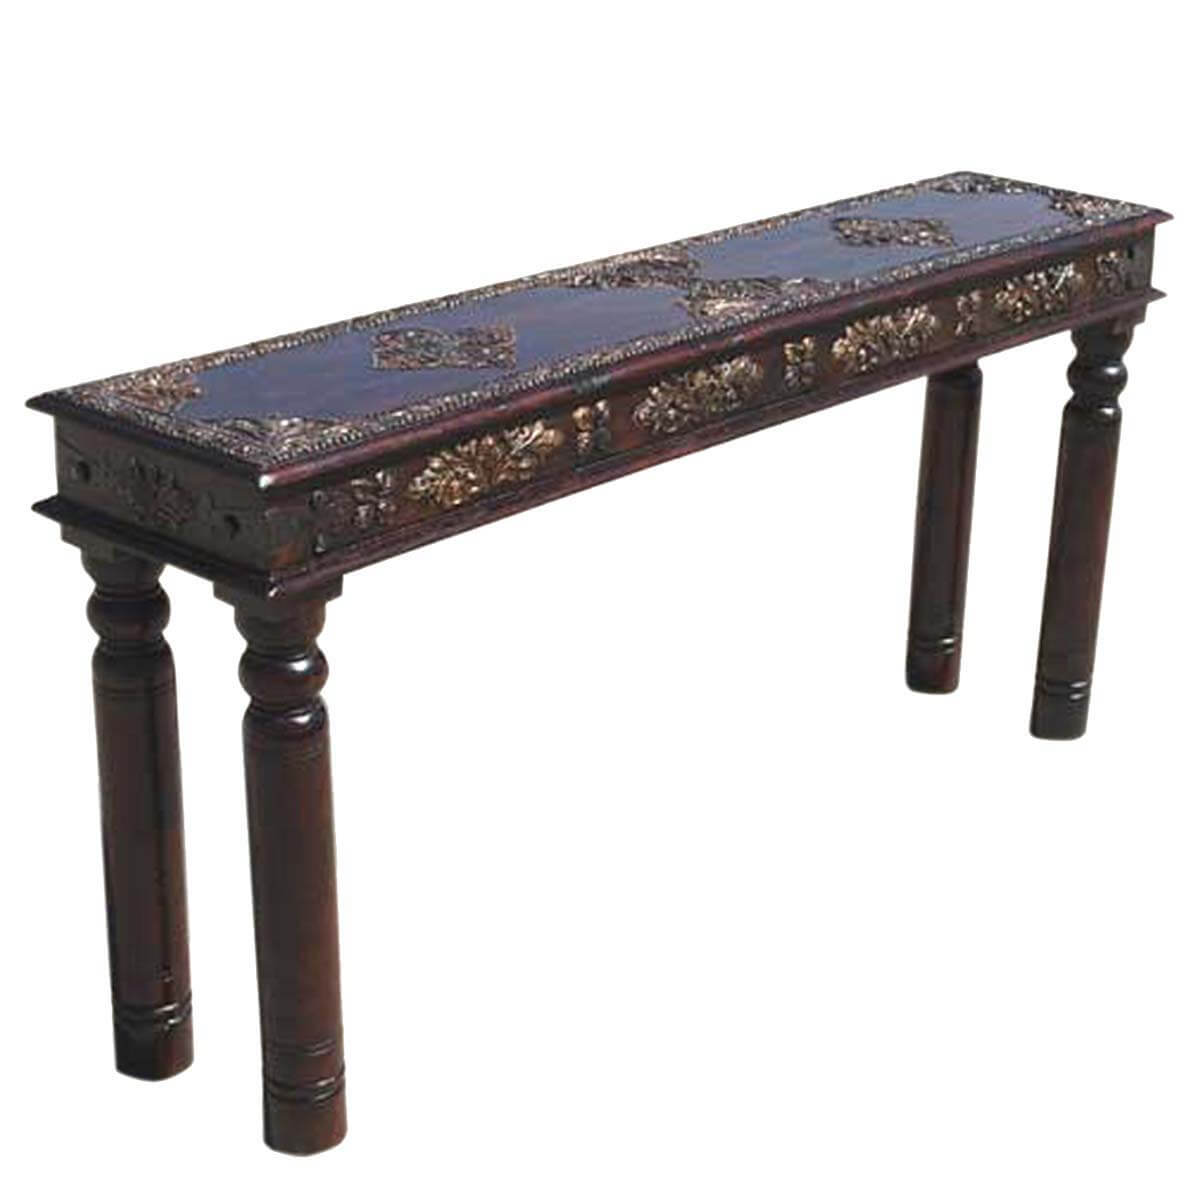 antique accent work hall entry way console sofa table. Black Bedroom Furniture Sets. Home Design Ideas